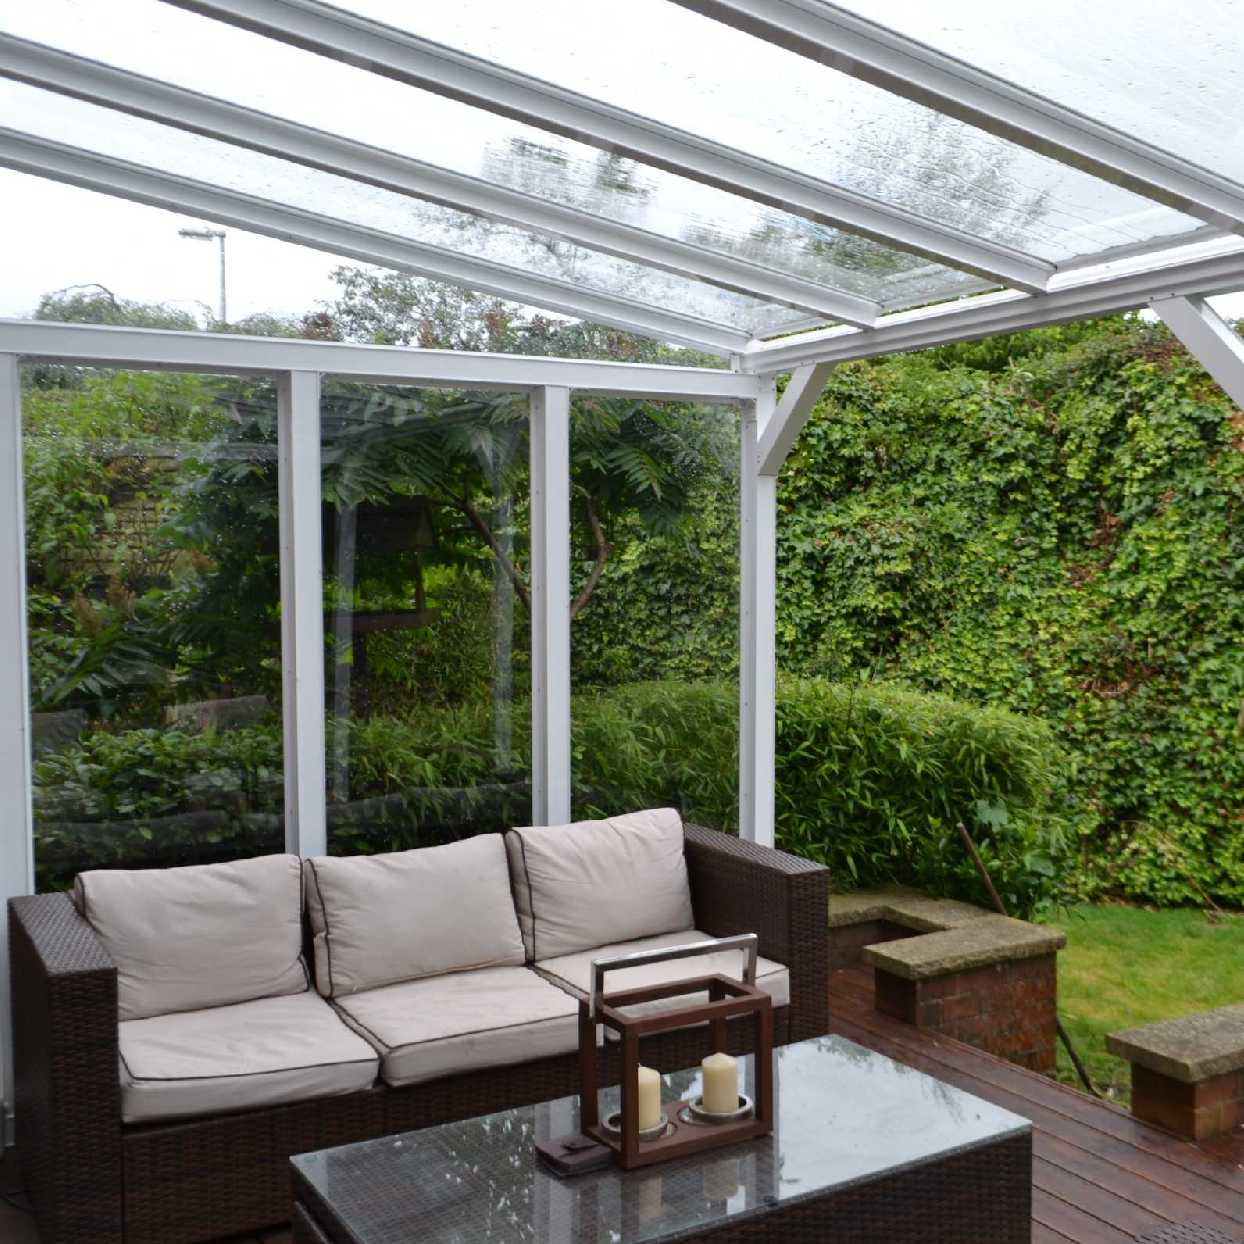 Omega Smart Lean-To Canopy with 6mm Glass Clear Plate Polycarbonate Glazing - 7.7m (W) x 1.5m (P), (4) Supporting Posts